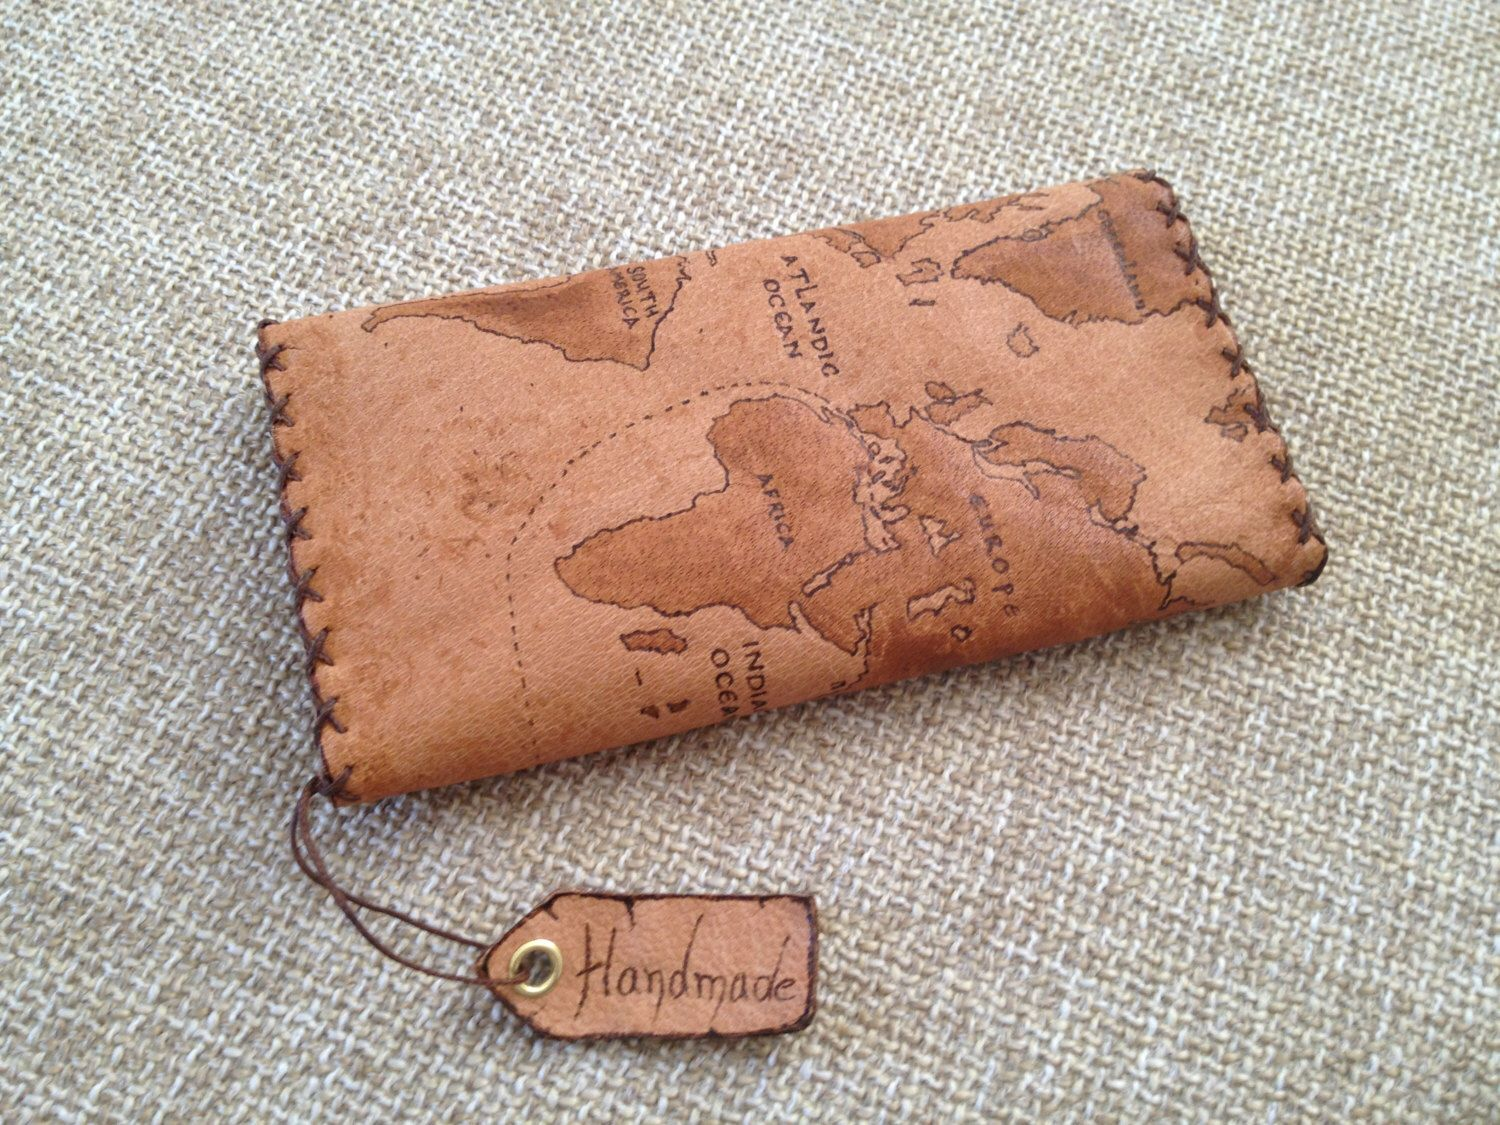 World map leather tobacco pouch pipe pouch wallet case pyrography world map leather tobacco pouch pipe pouch wallet case pyrography leather portatabacco gumiabroncs Images